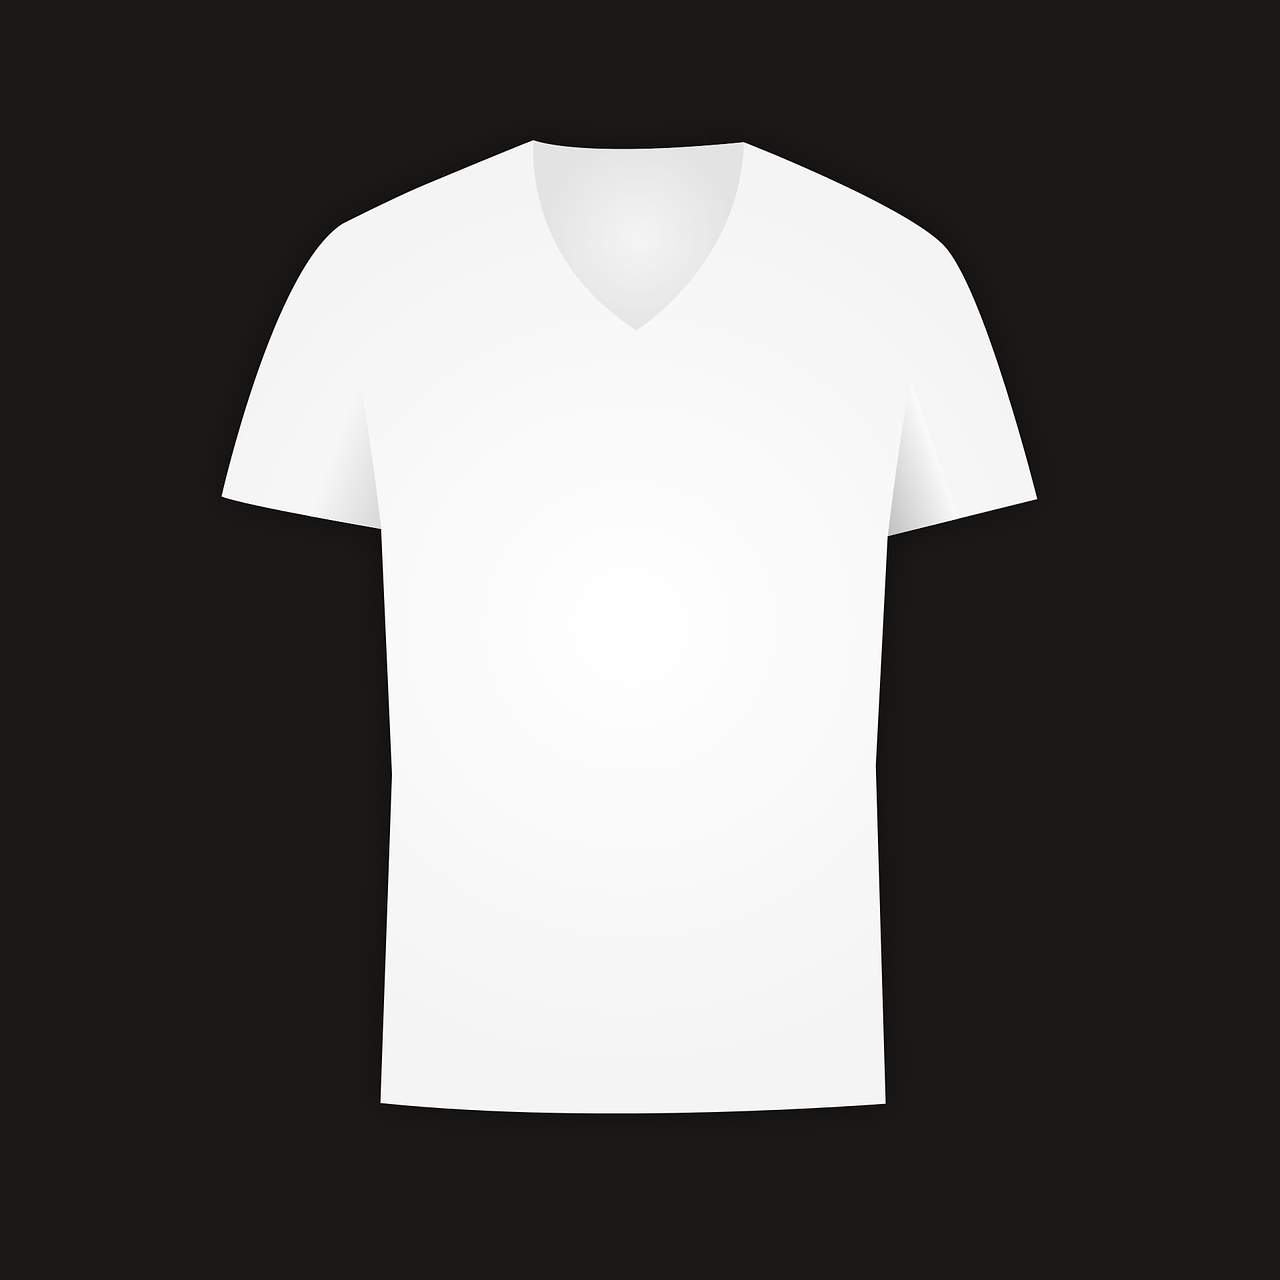 white v neck t shirt template png png image